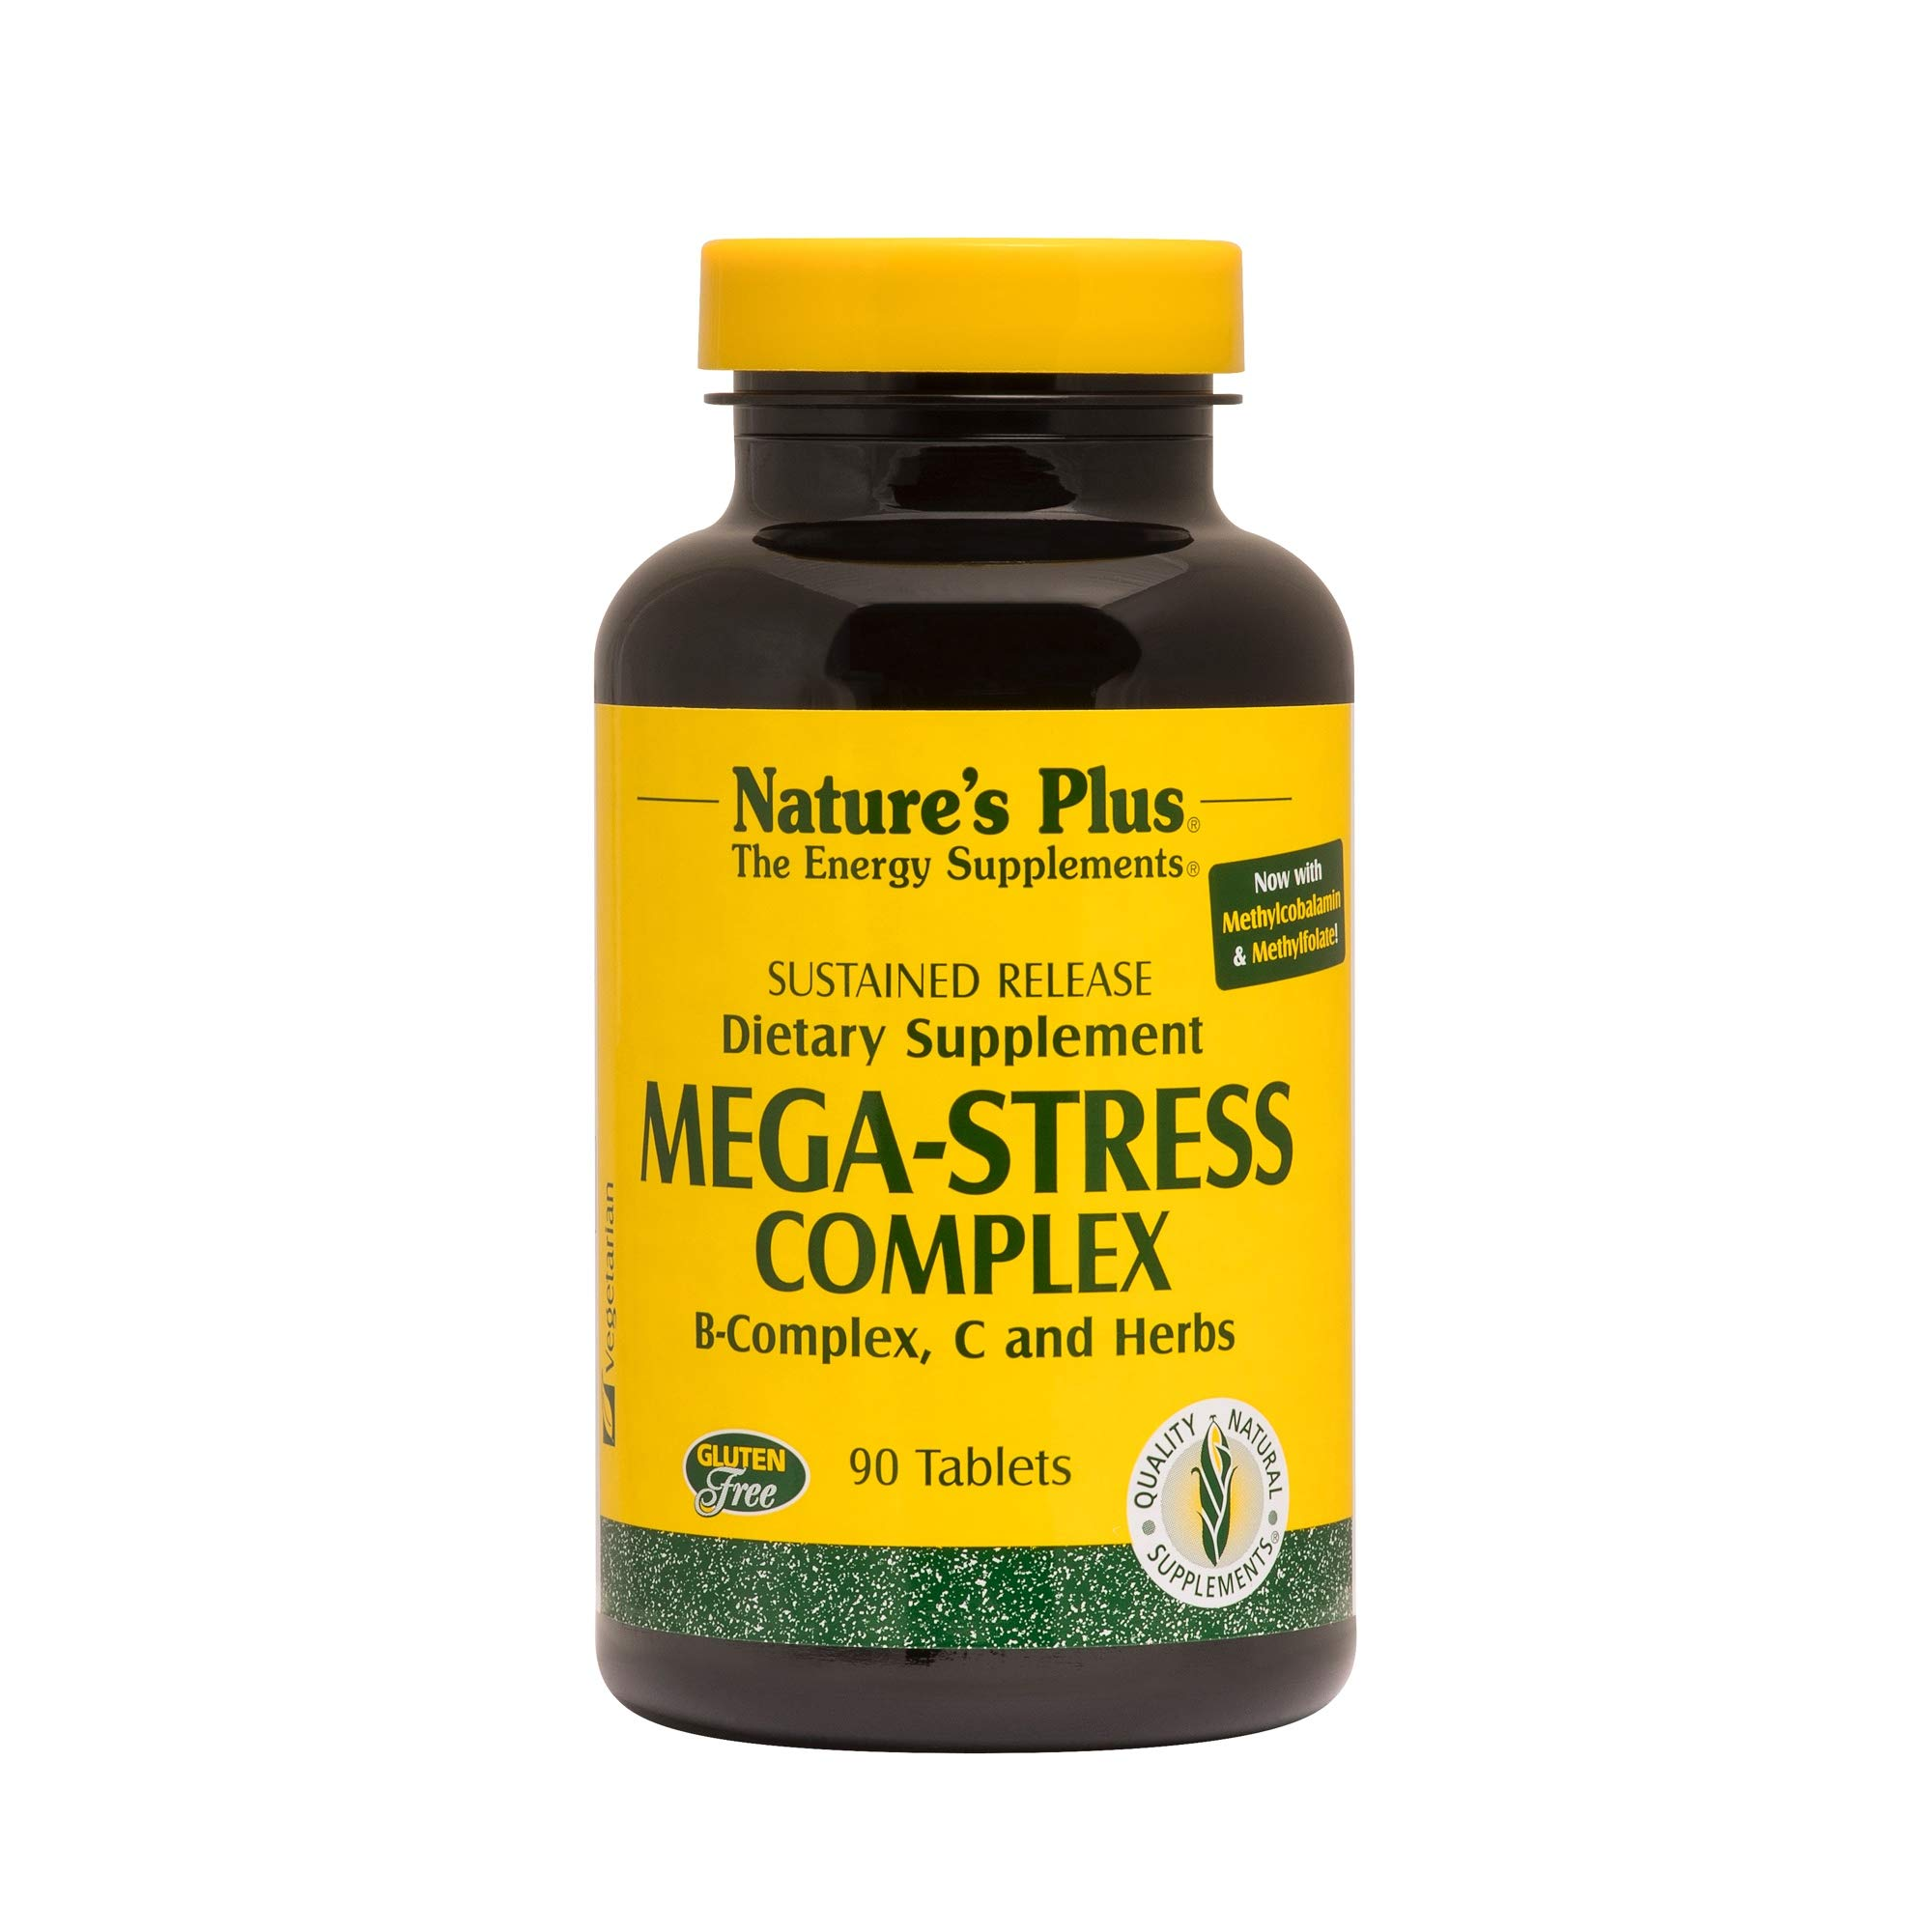 NaturesPlus Mega-Stress Complex, Sustained Release - 90 Vegetarian Tablets - B Complex, Vitamin C Stress Relief Supplement, Chamomile & Herbs for Natural Calm - Gluten-Free - 90 Servings by Nature's Plus